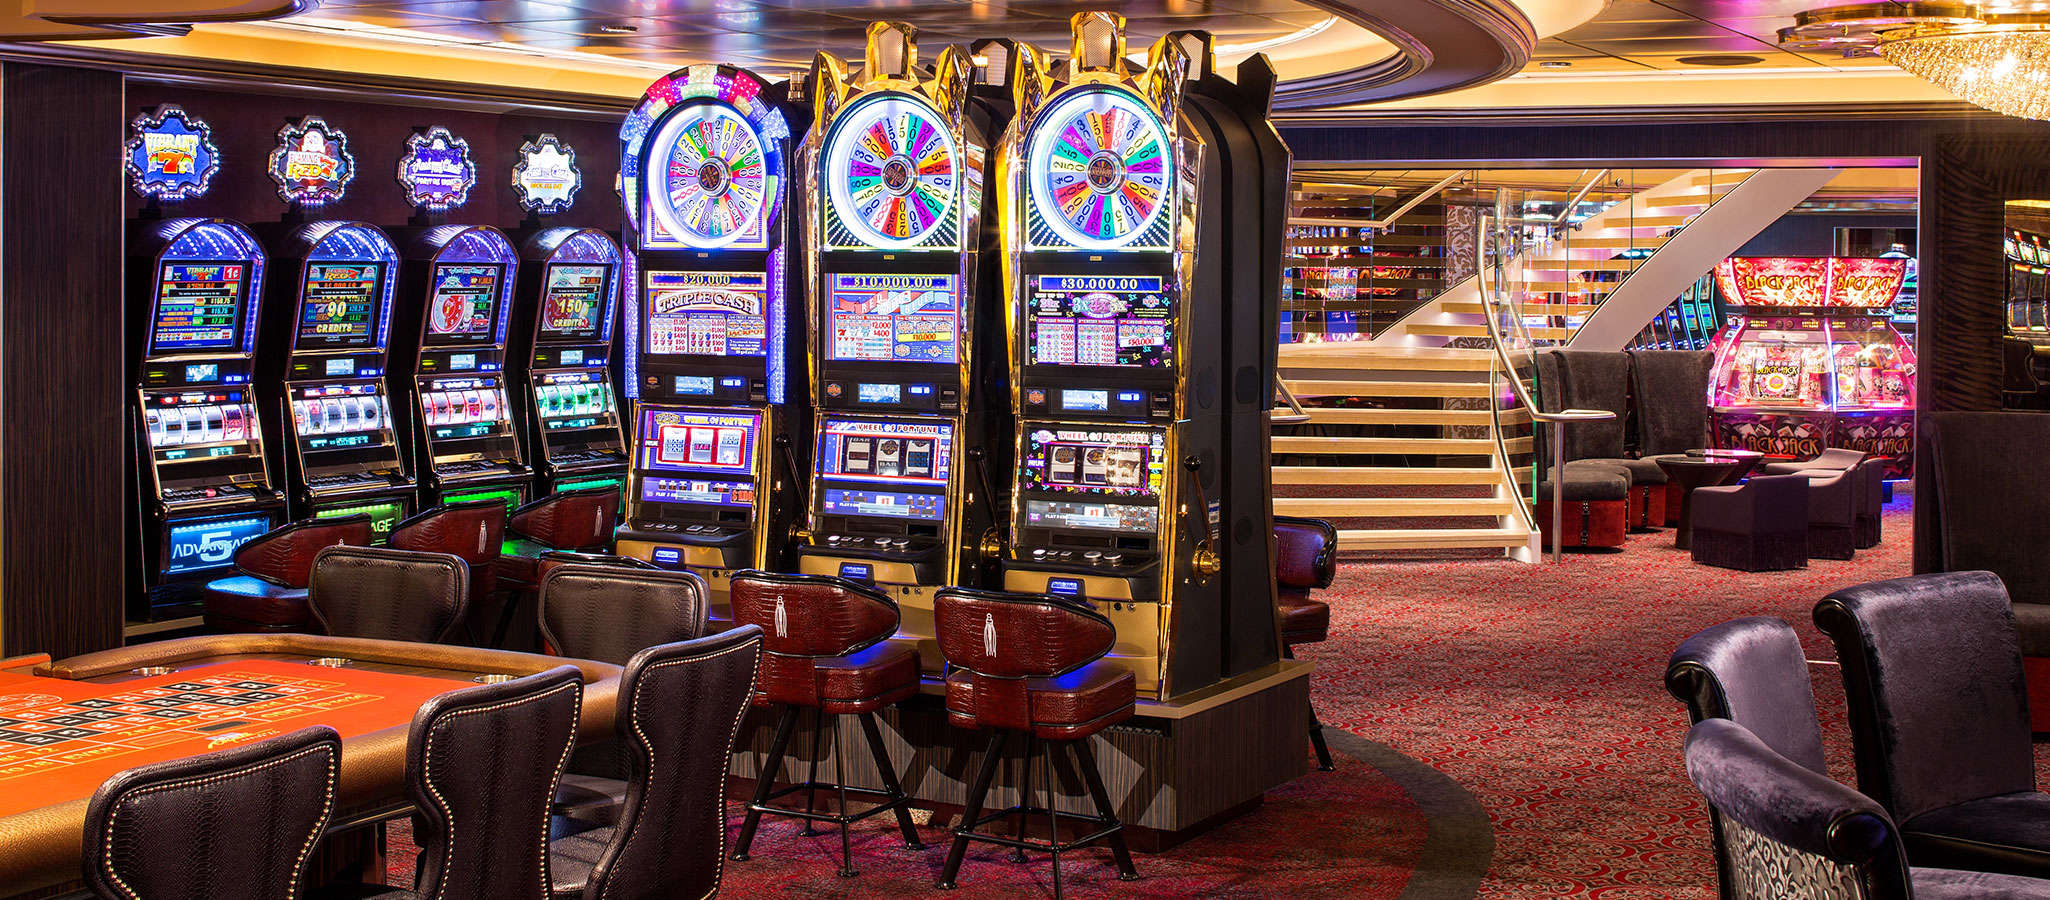 Of course, the giant all-in-one ships also have huge casinos – themed evenings can be brilliantly staged there.